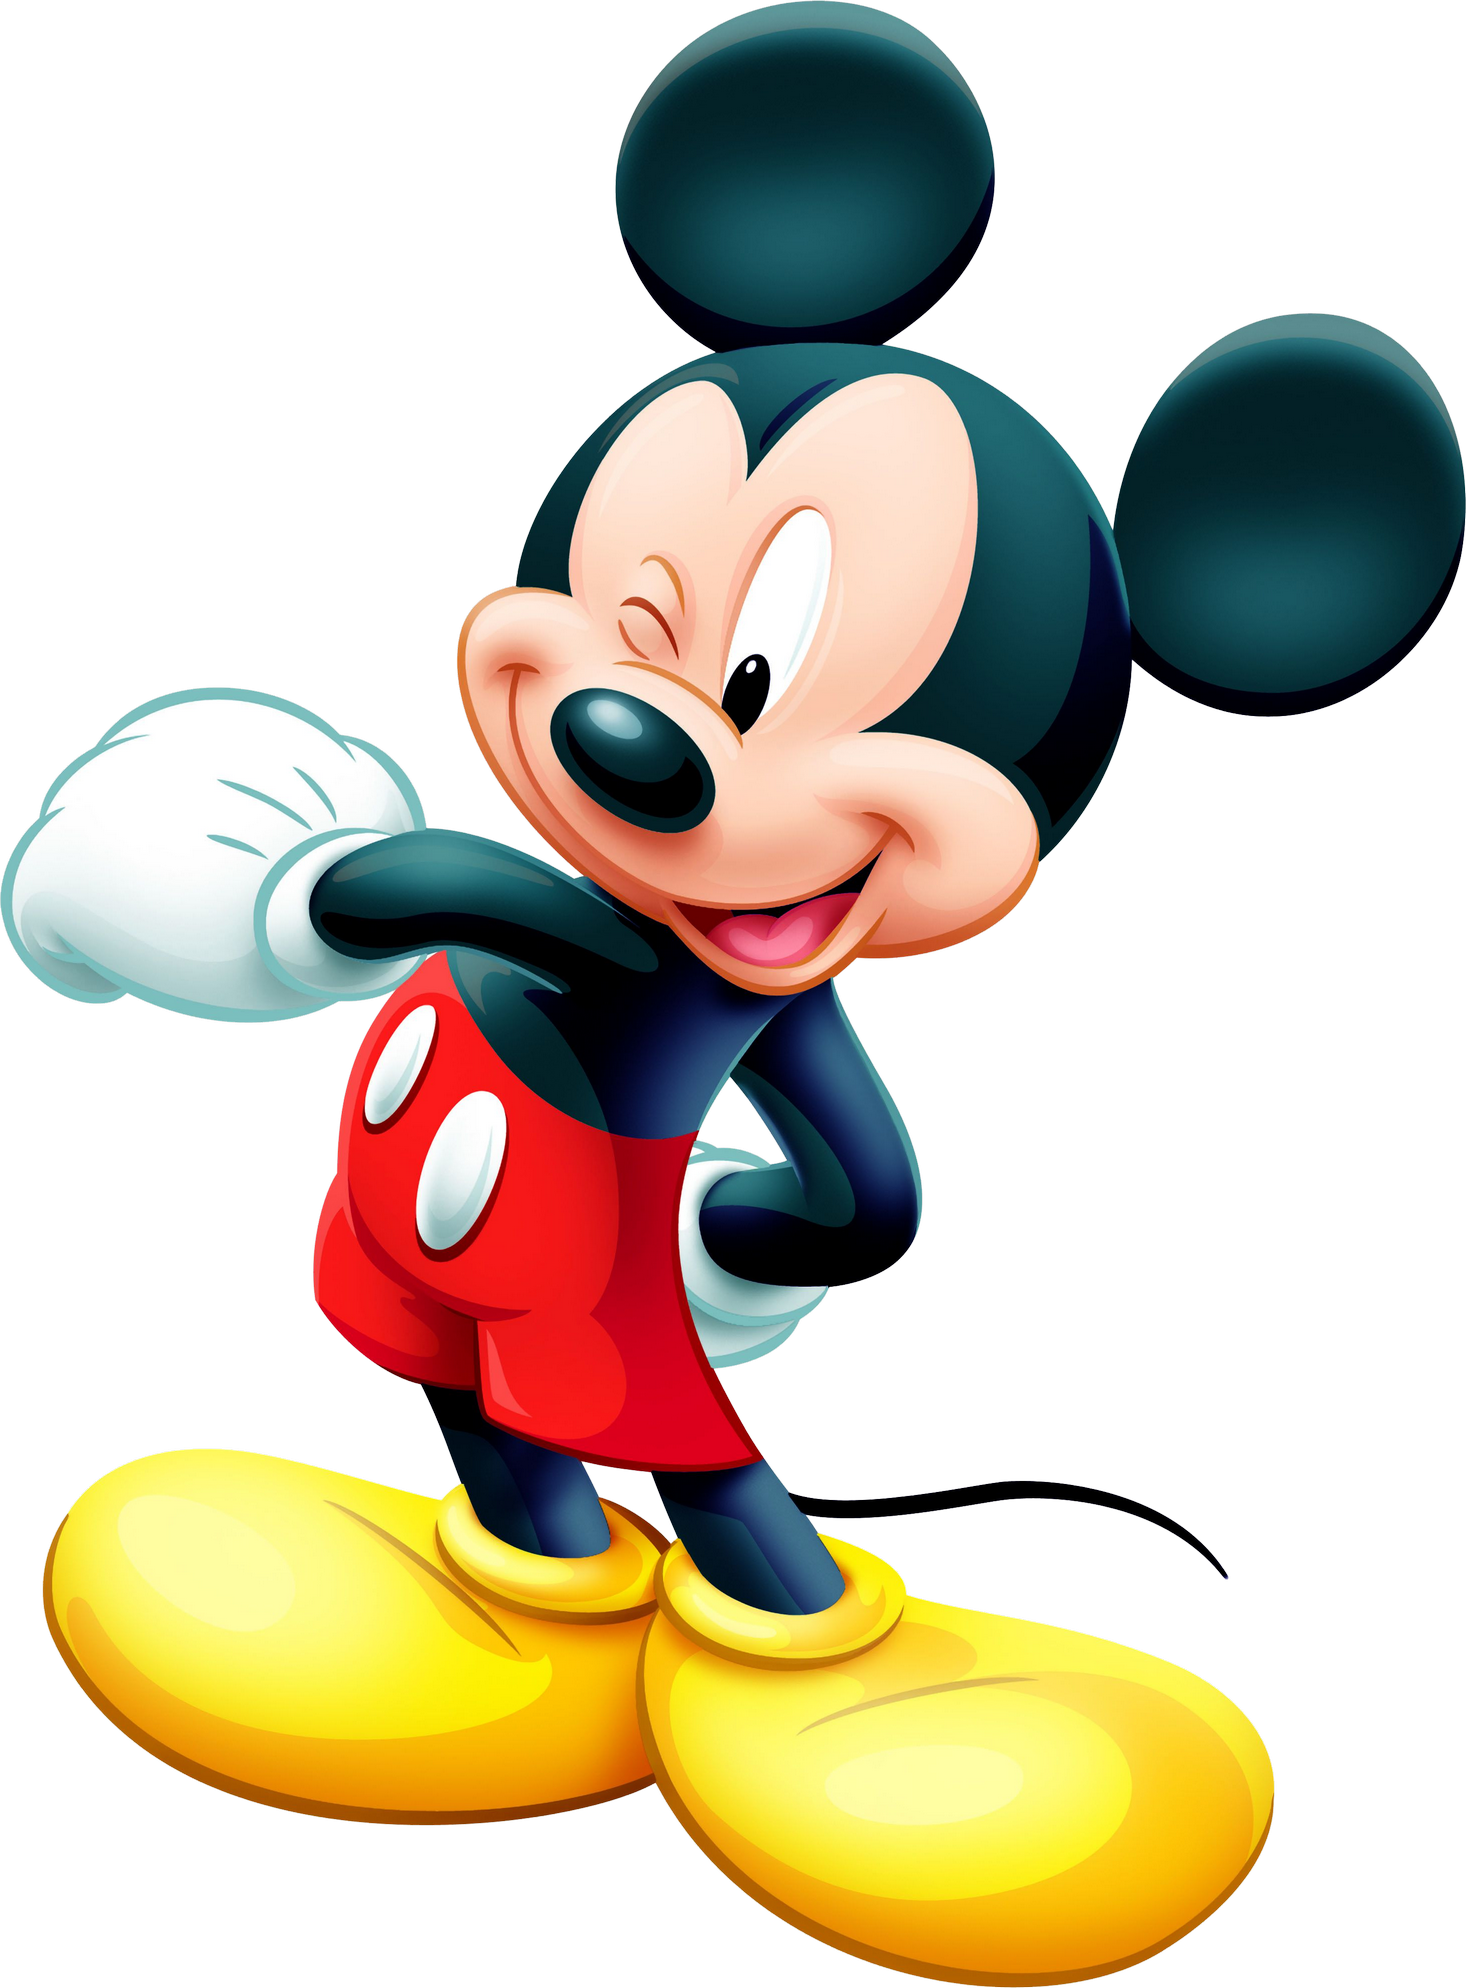 Mickey Mouse PNG Image.